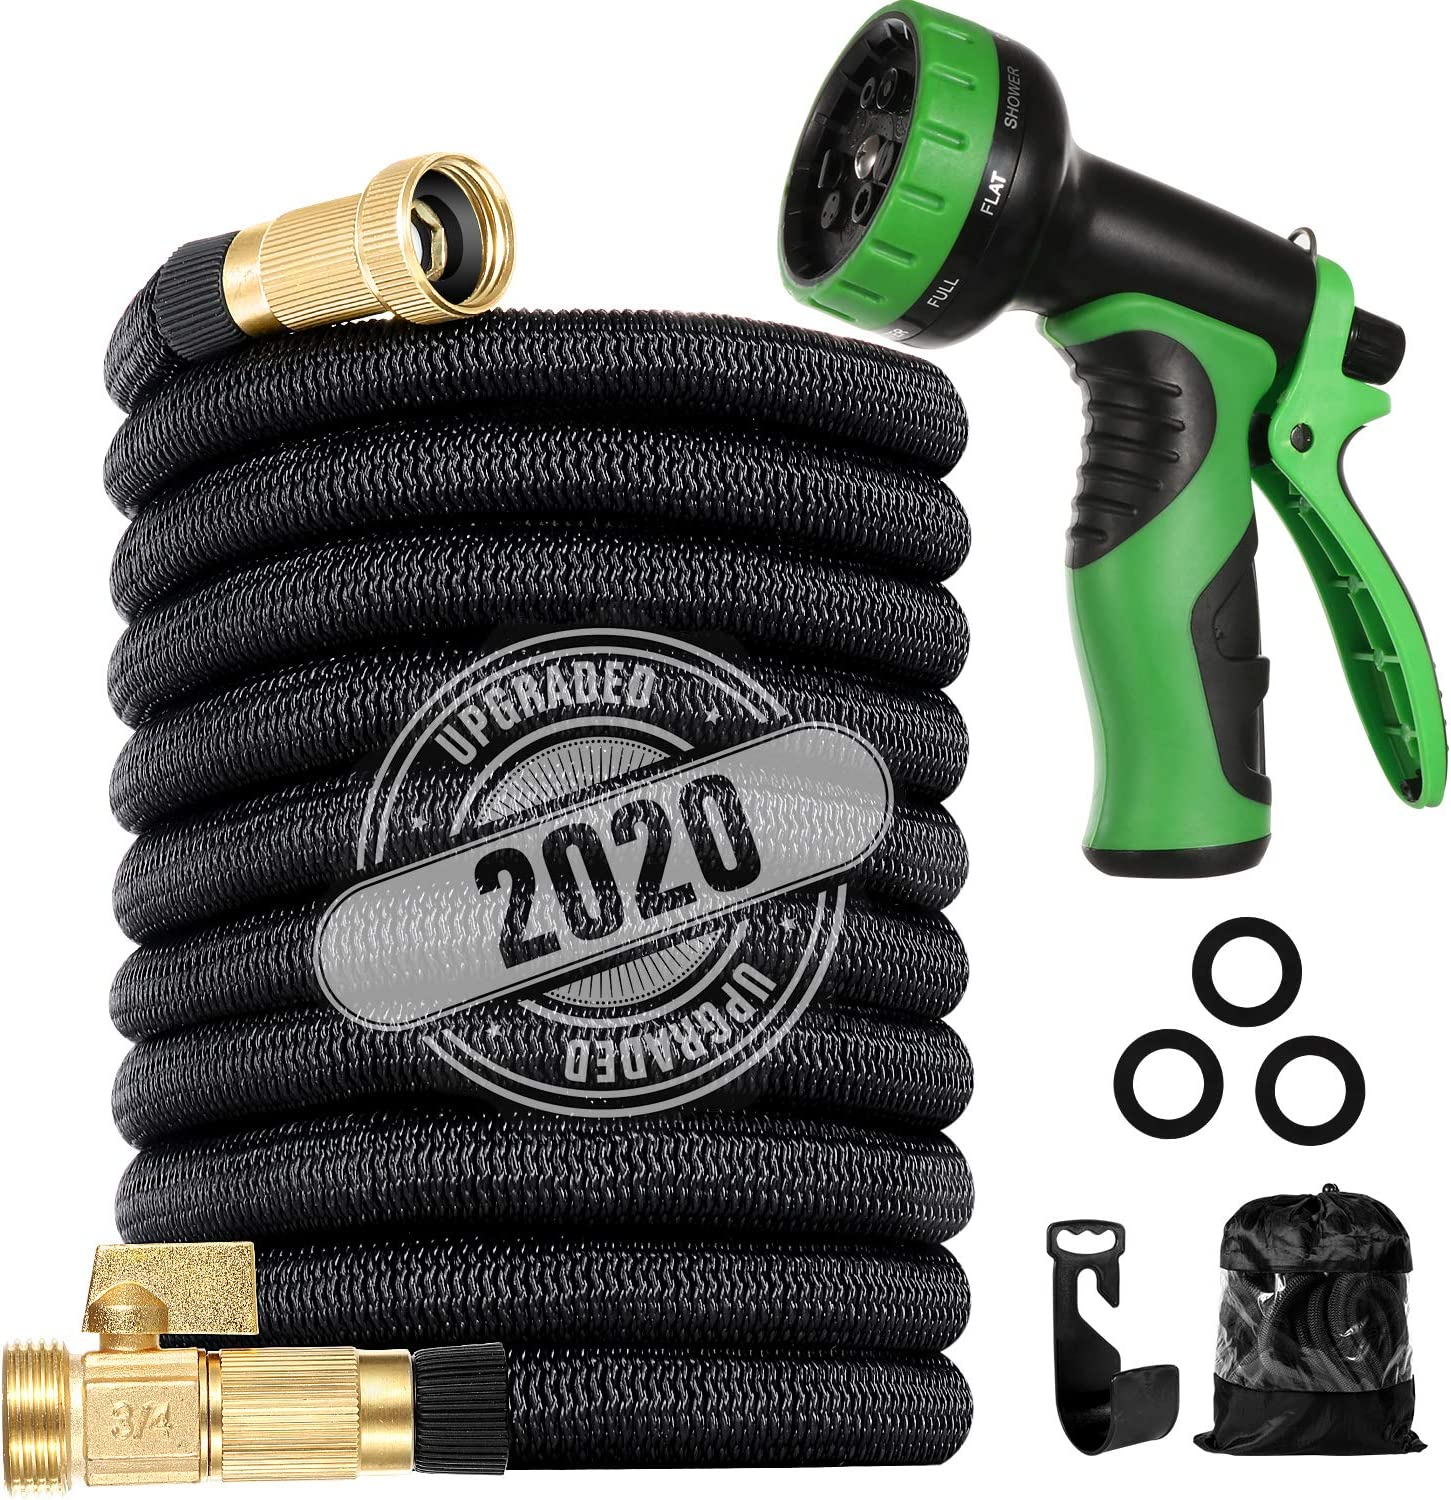 "LINQUO 200 ft Flexible and Expandable Garden Hose - Strongest Triple Latex Core with 3/4"" Solid Brass Fittings Free 9 Function Spray Nozzle, Easy Storage Kink Free Water Hose"